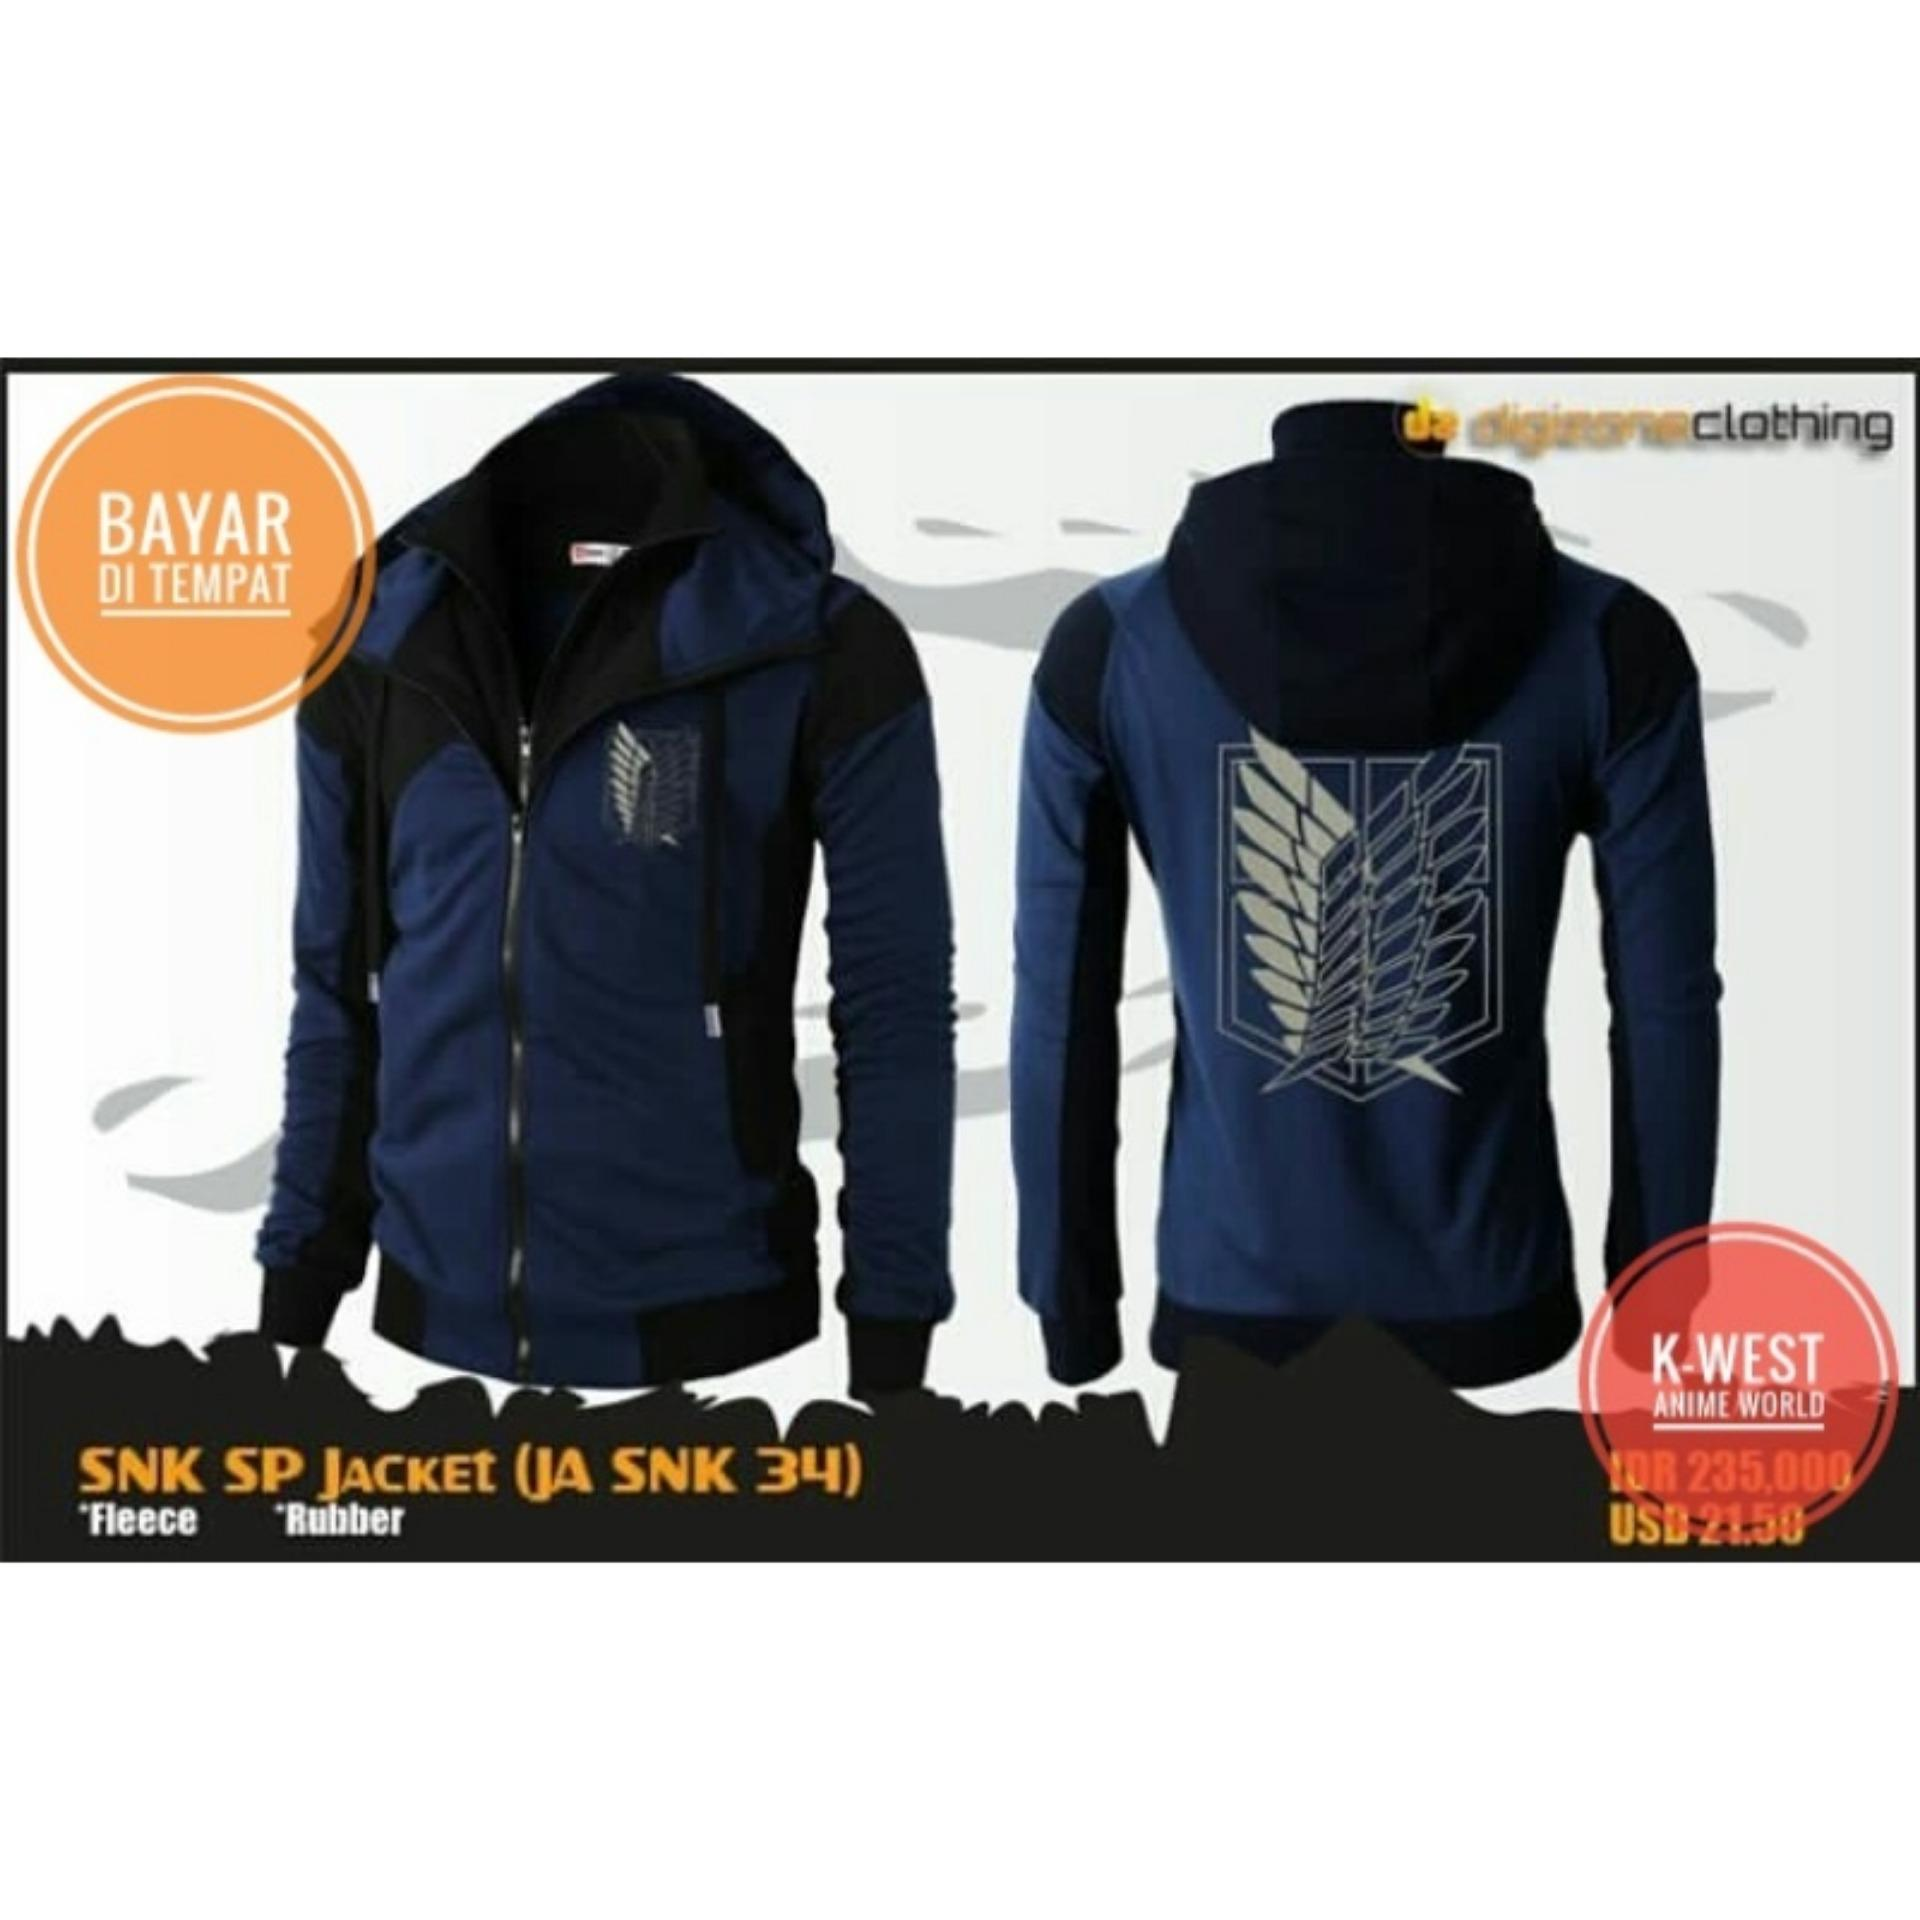 Harga Jaket Anime Attack On Titan Navy Double Zipper Hoodie Best Seller K West Original